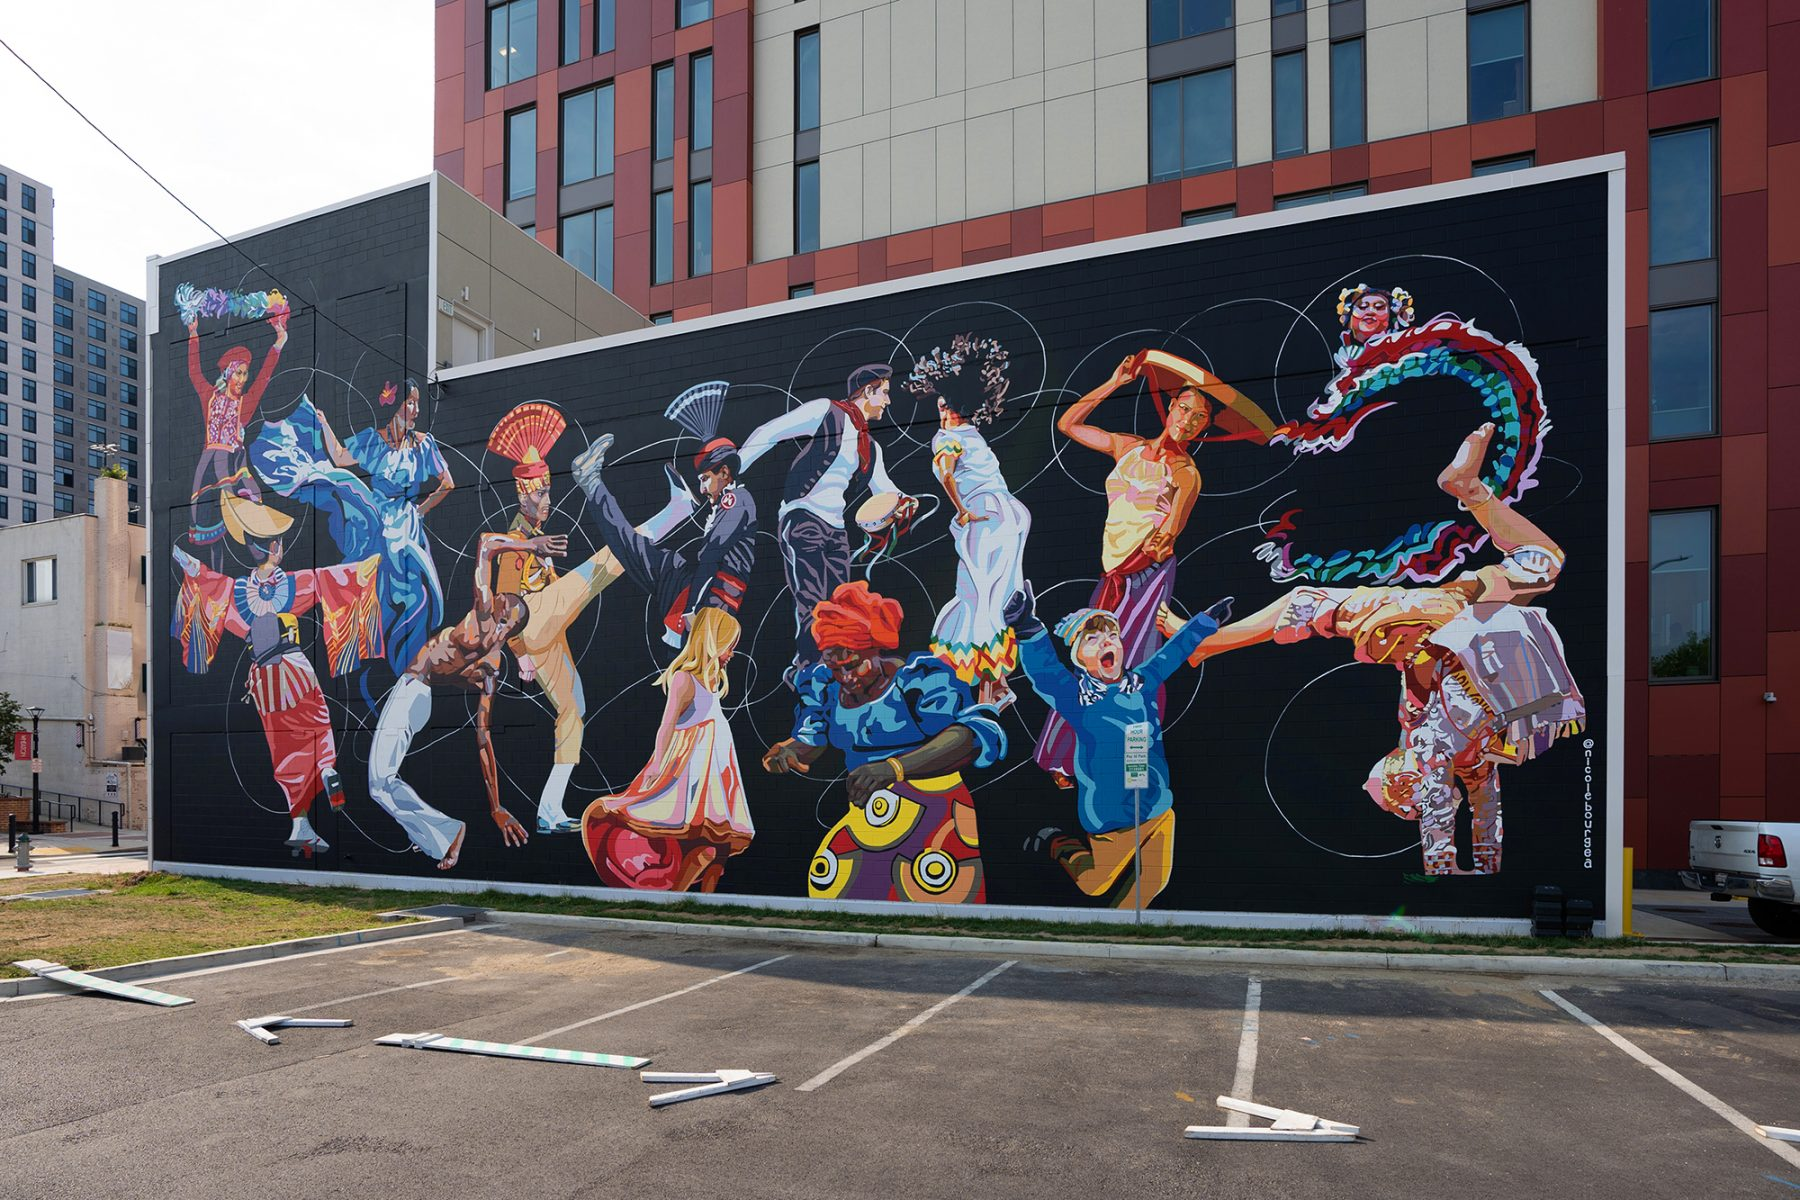 Bold, colorful mural of dancers